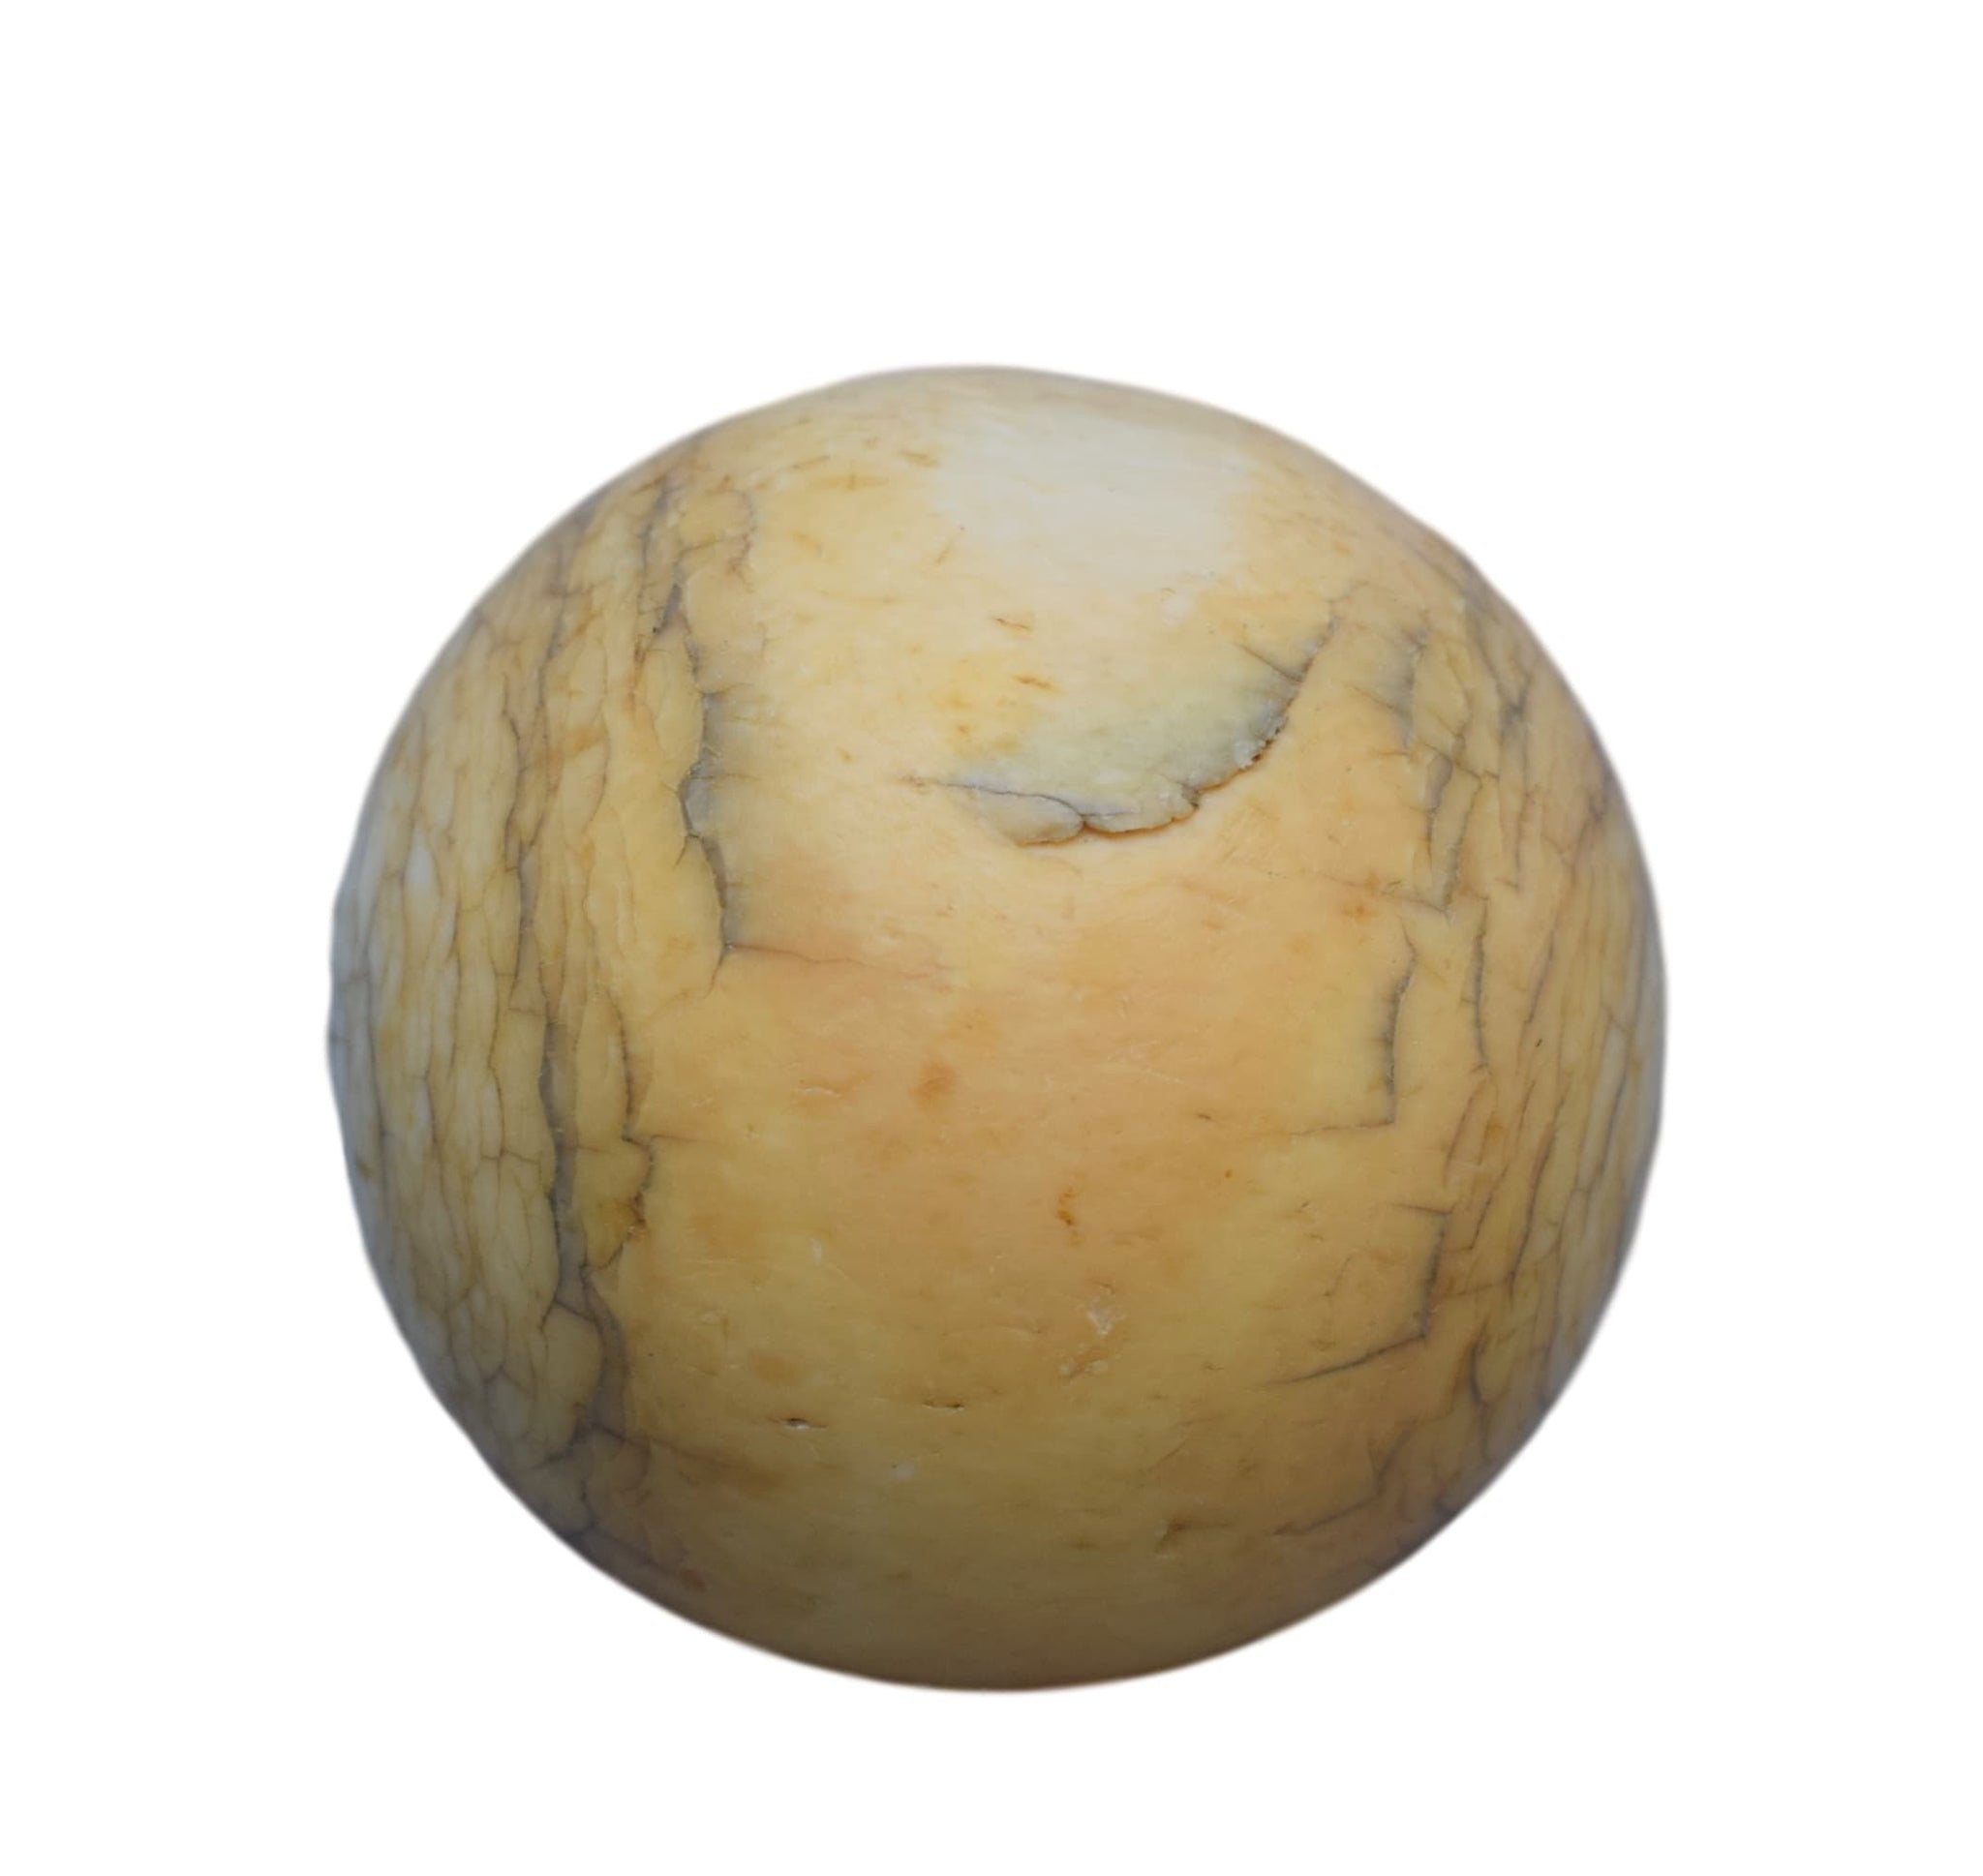 SOLD Ivory Pool Ball - Charmantiques